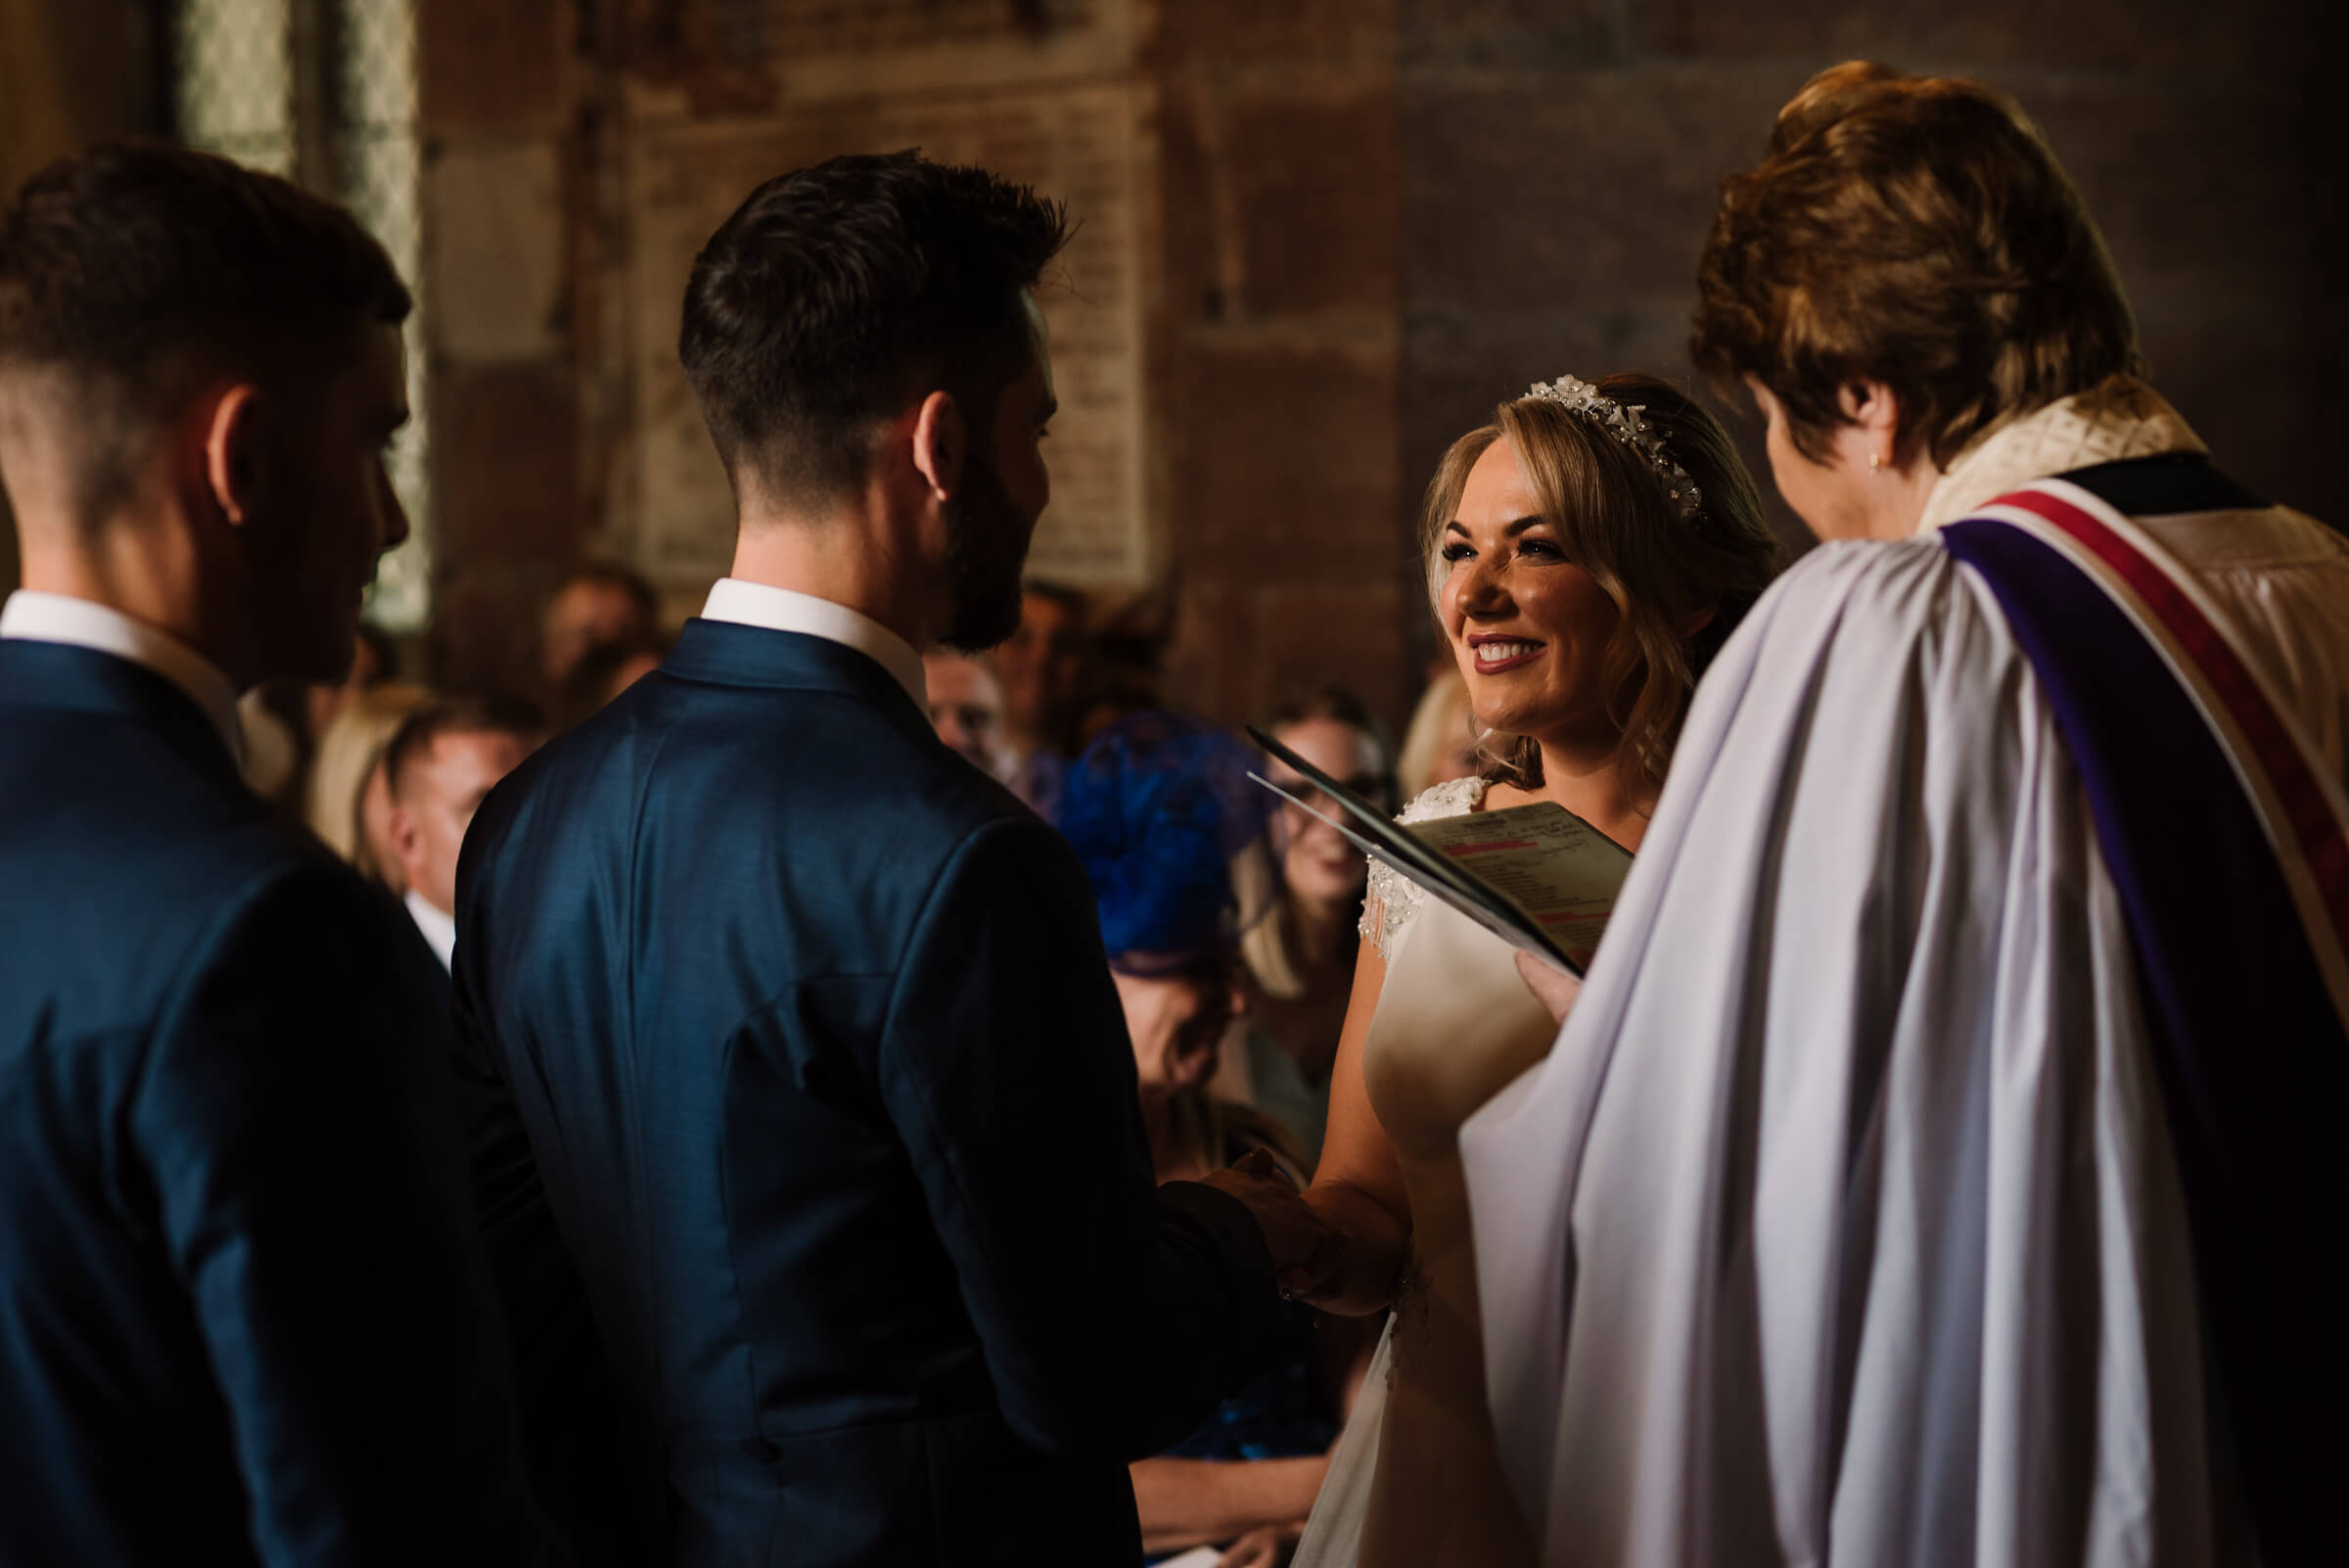 bride smiling at groom and speaking vows